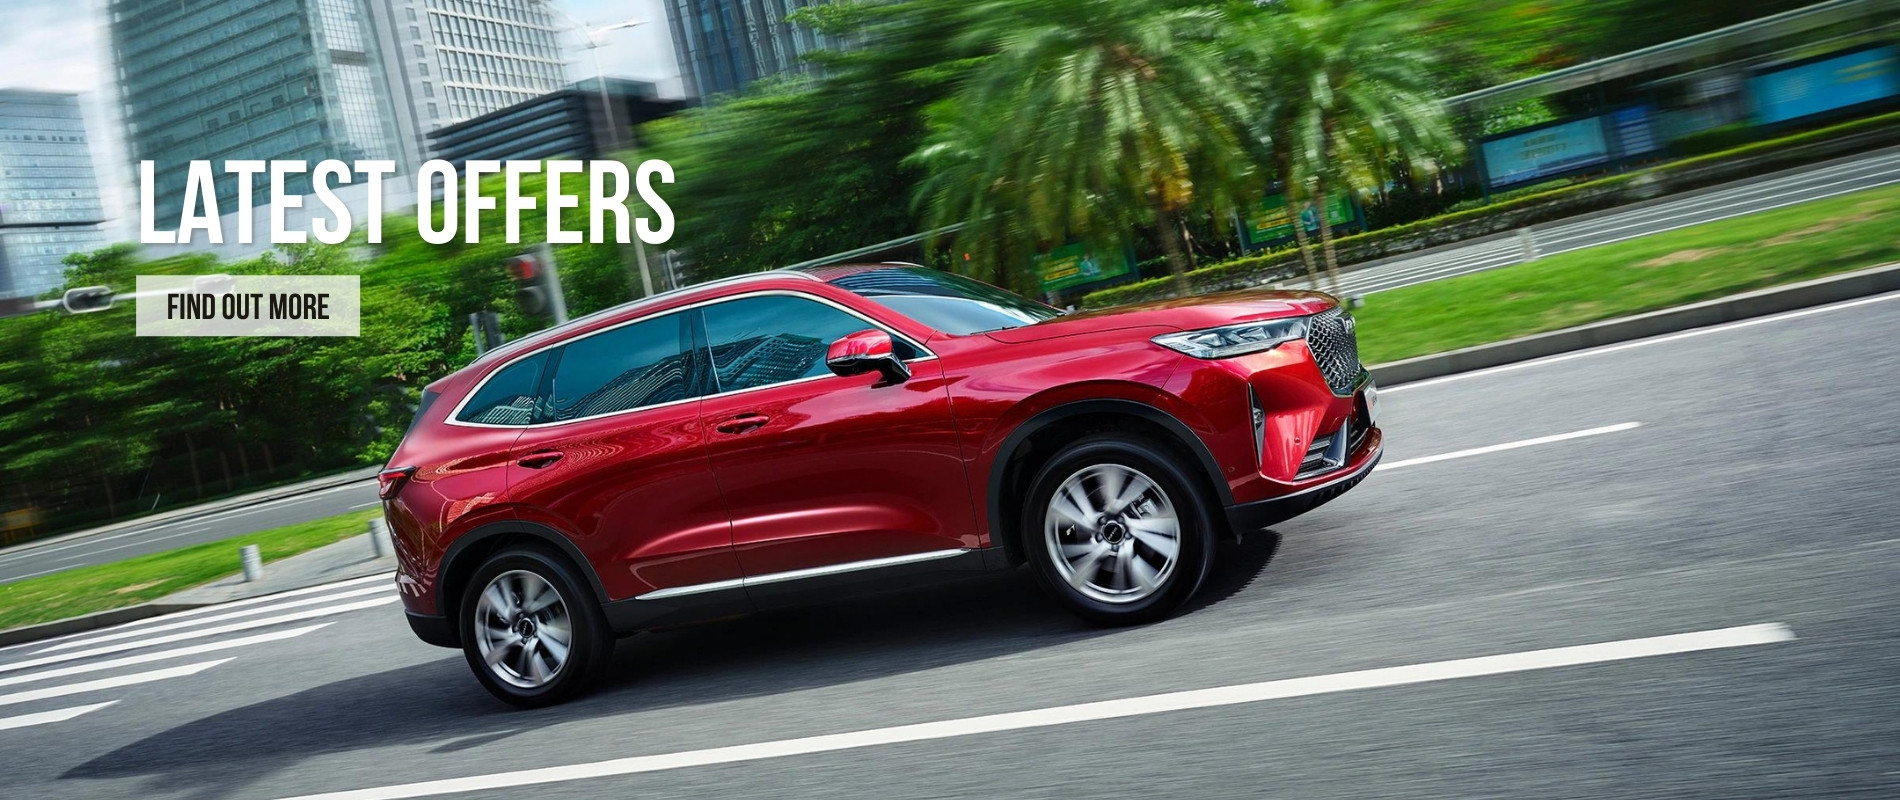 Discover the latest deals and offers on our full range of vehicles.